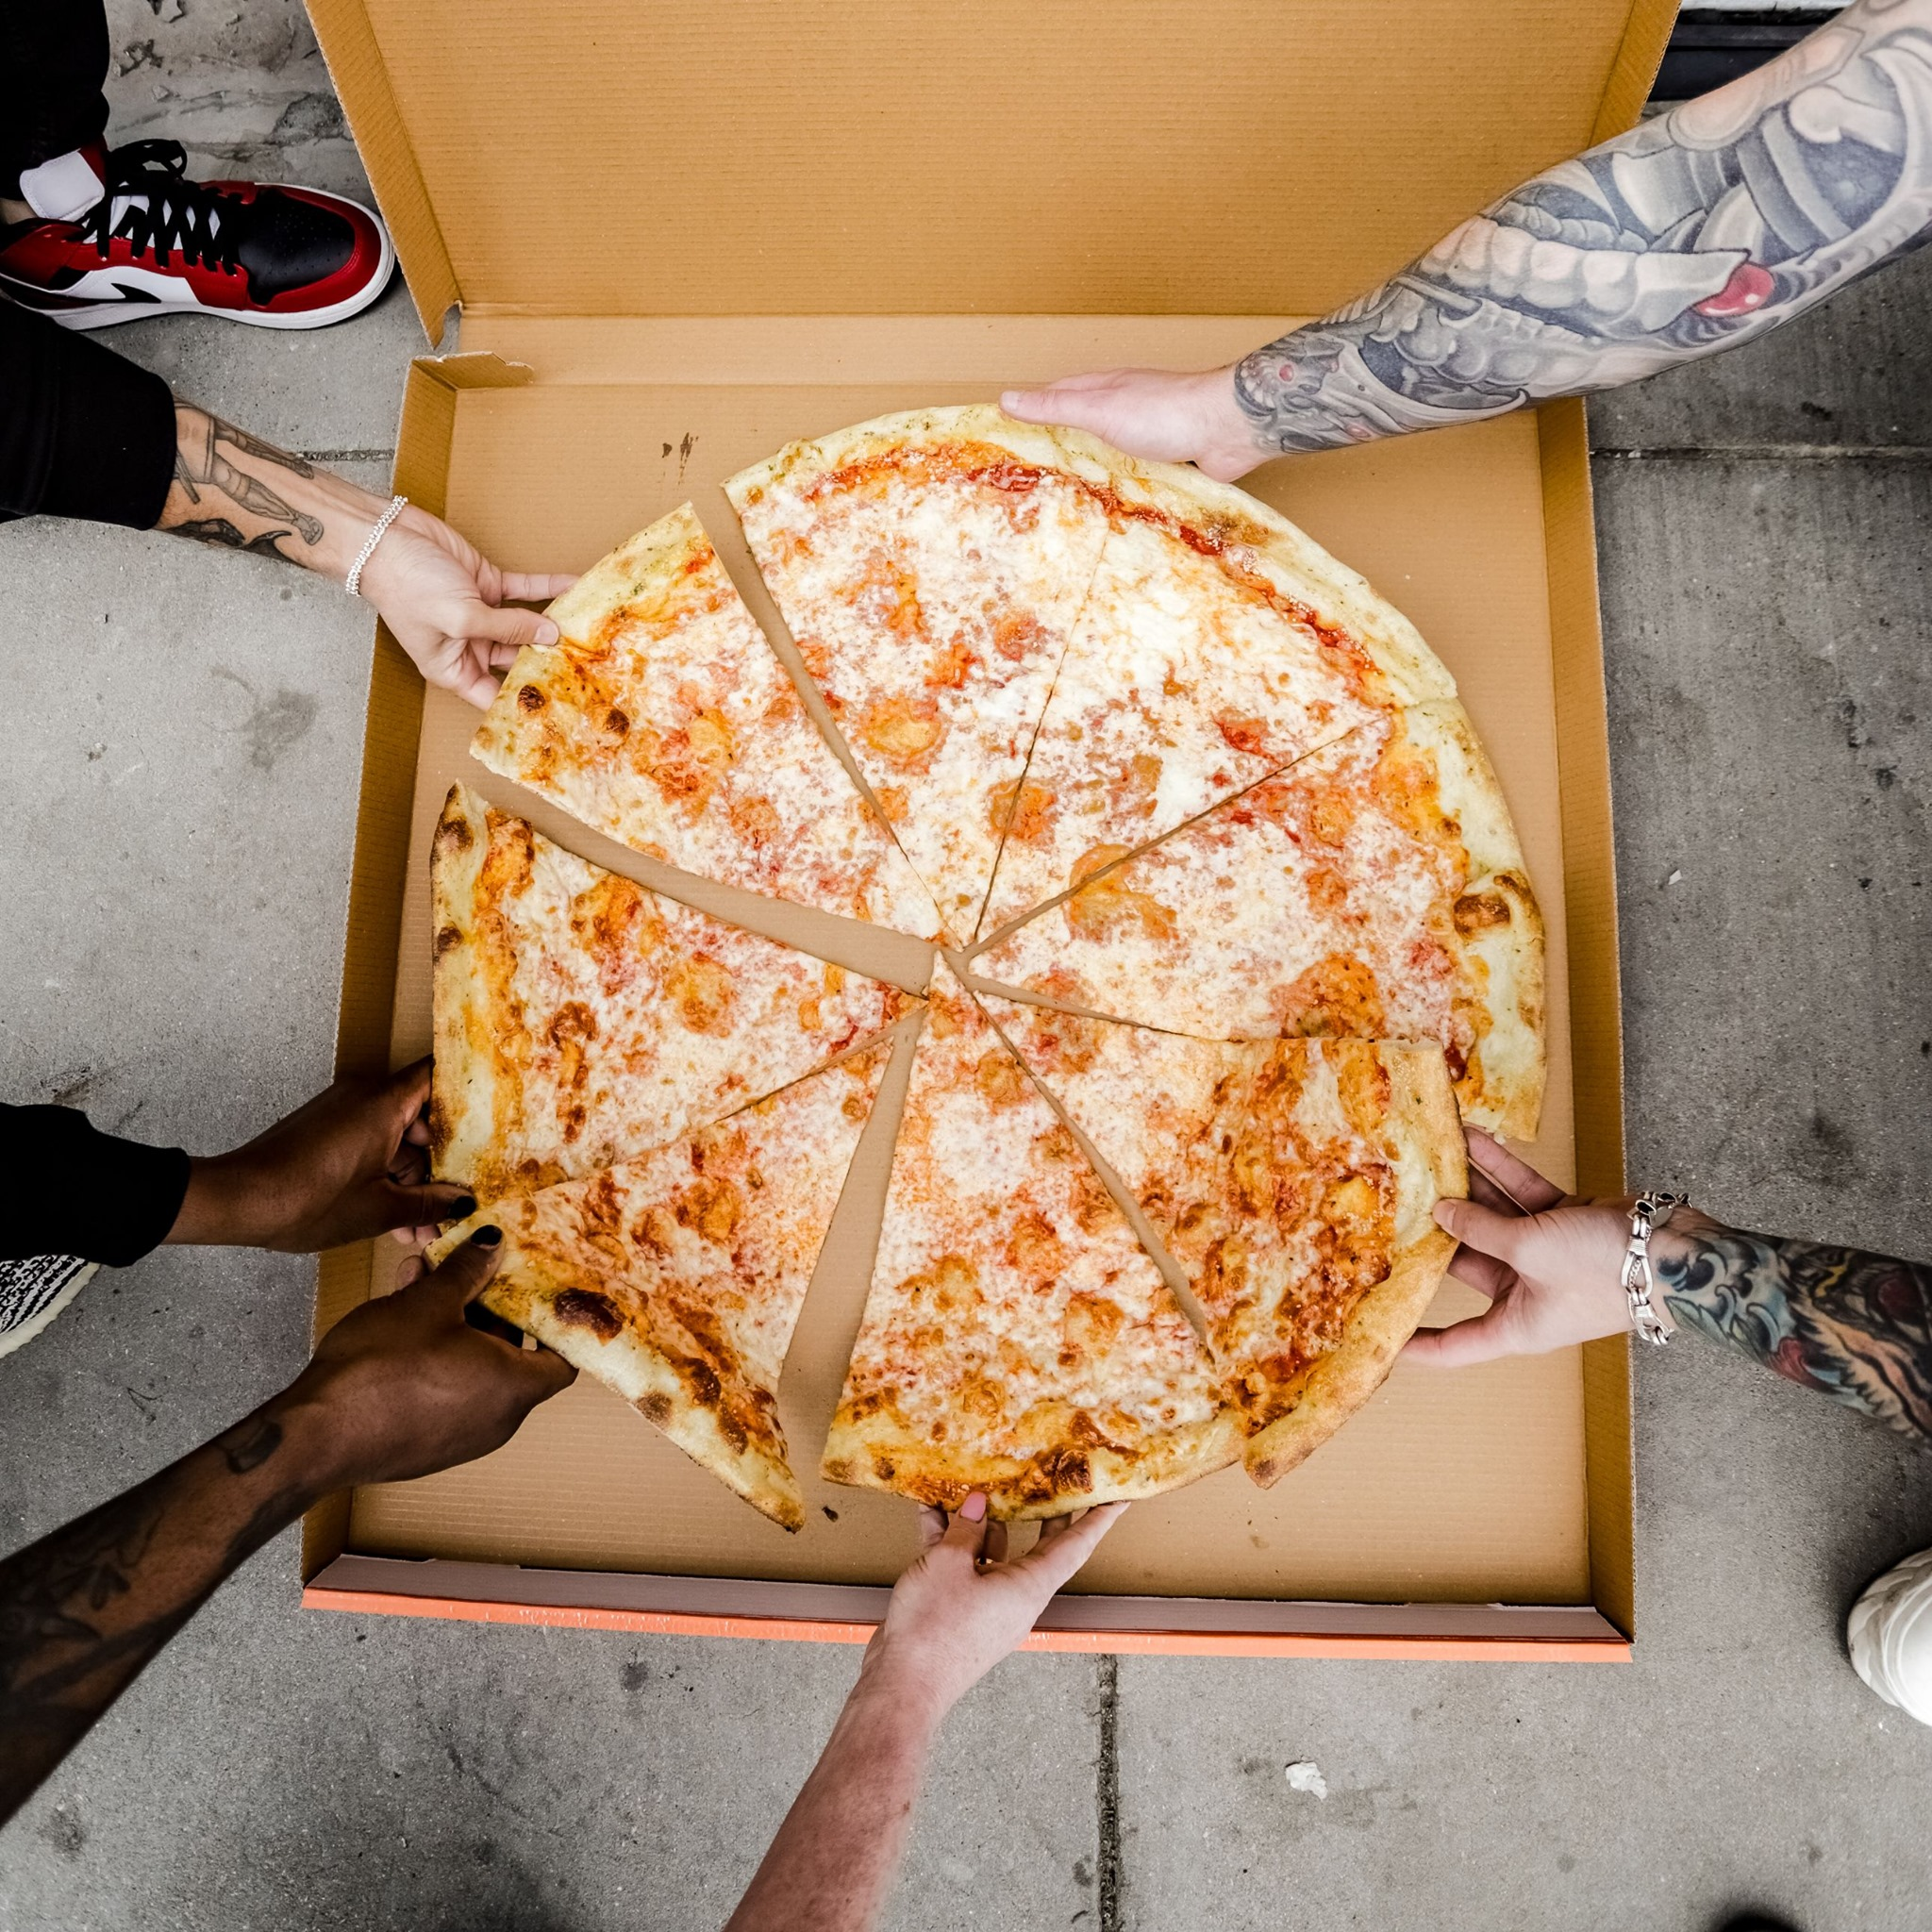 a large pizza, with several hands reaching for slices